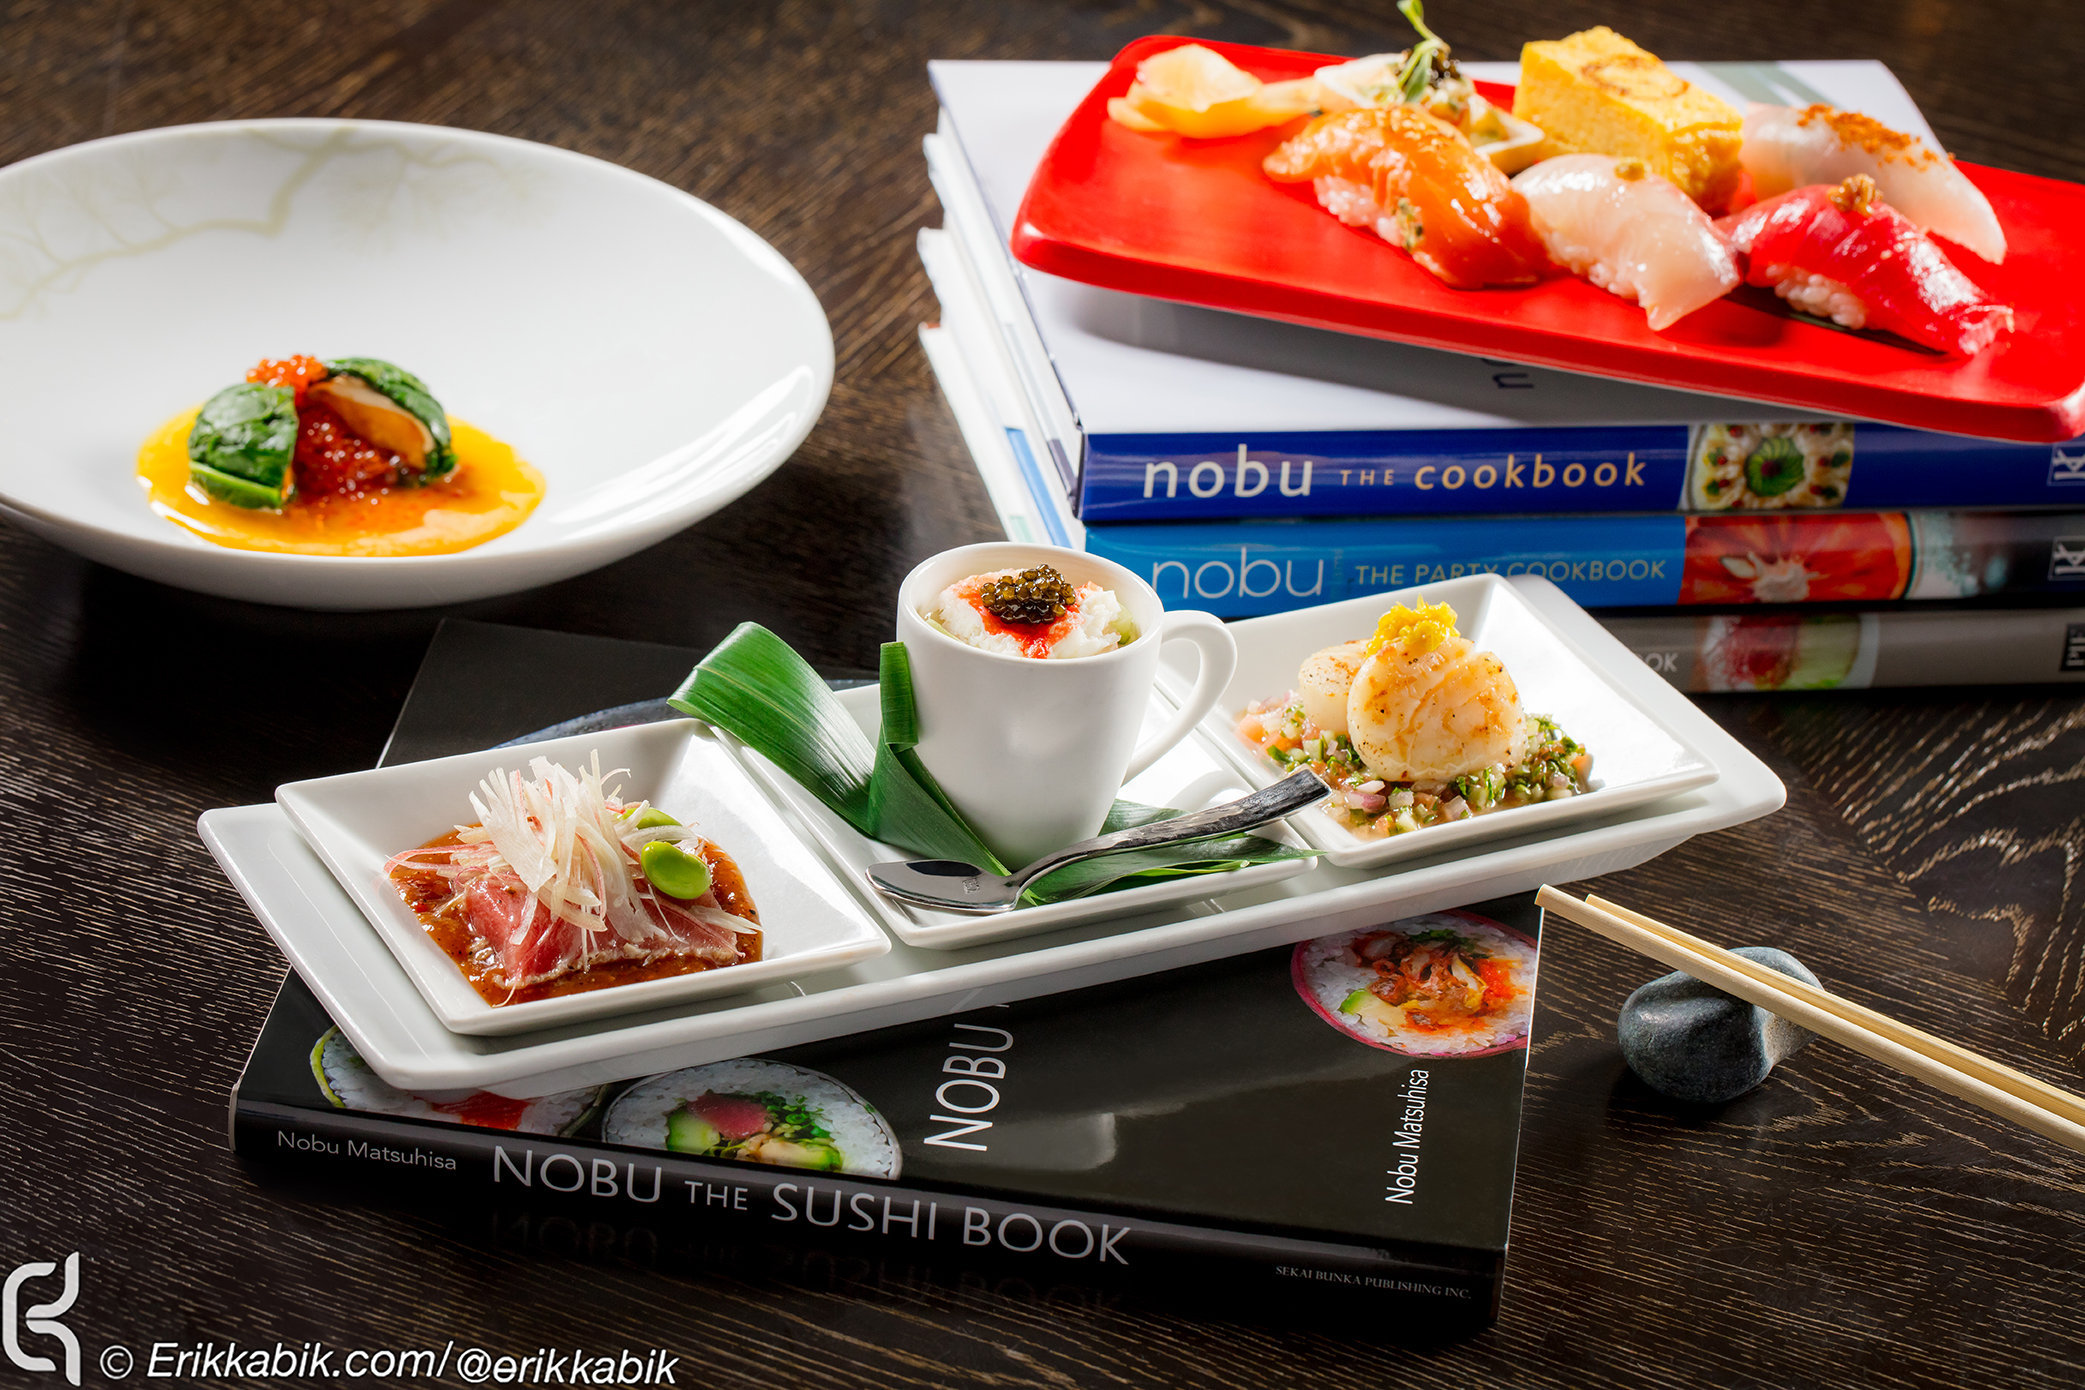 mpiEKP_02_13_18_NOBU_FOOD_KABIK-13 copy.jpg